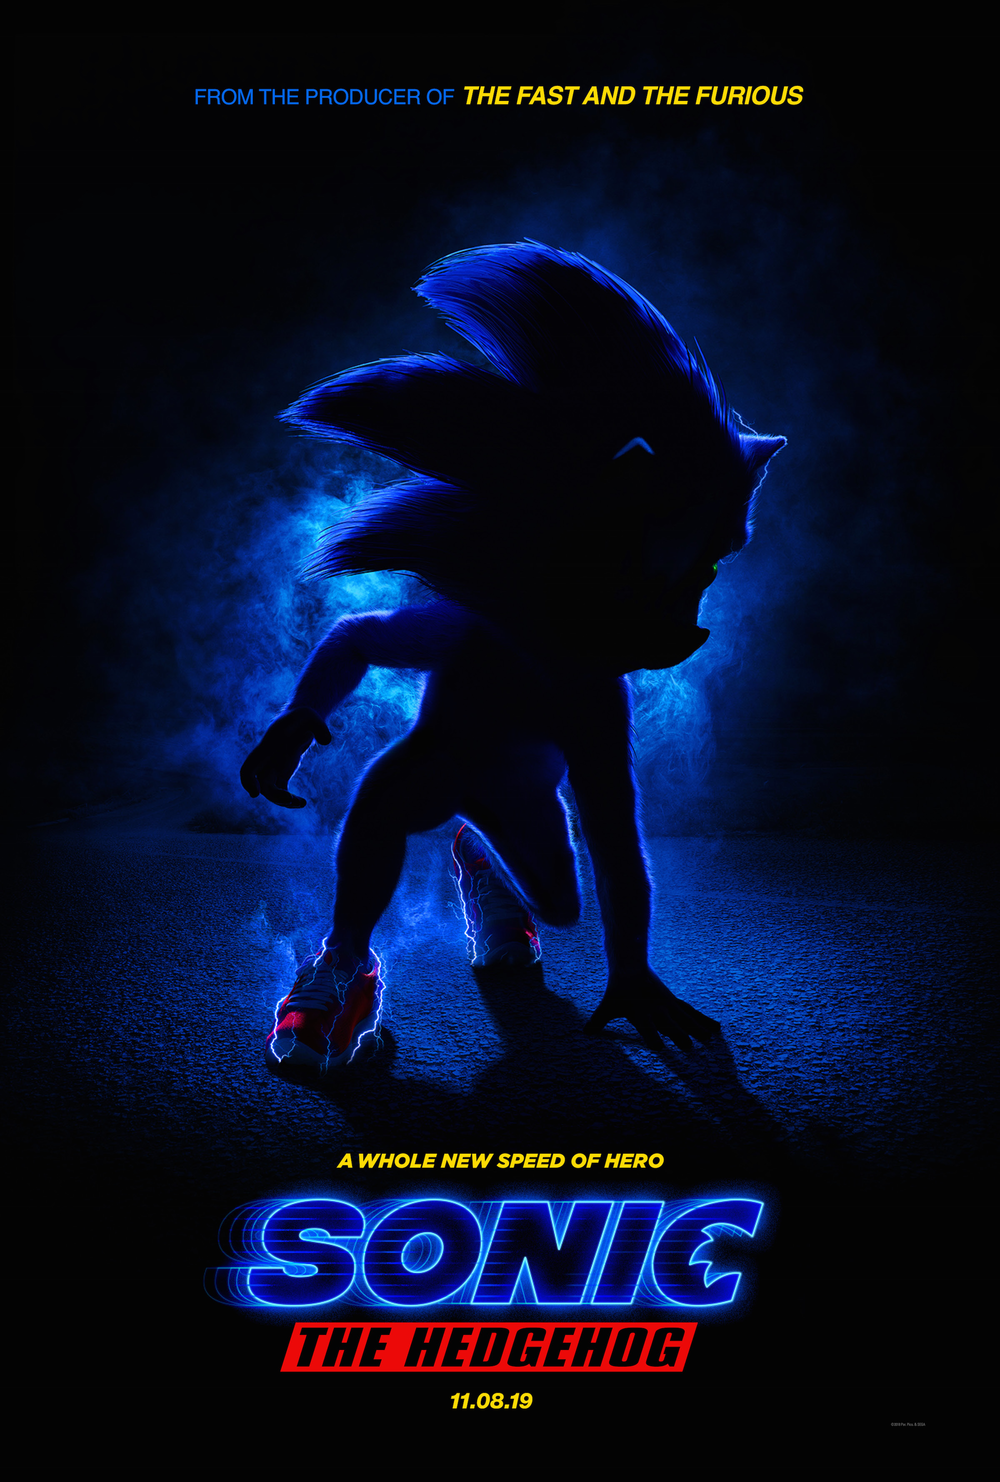 our-first-look-at-the-sonic-the-hedgehog-movie-comes-in-the-form-of-a-motion-poster1